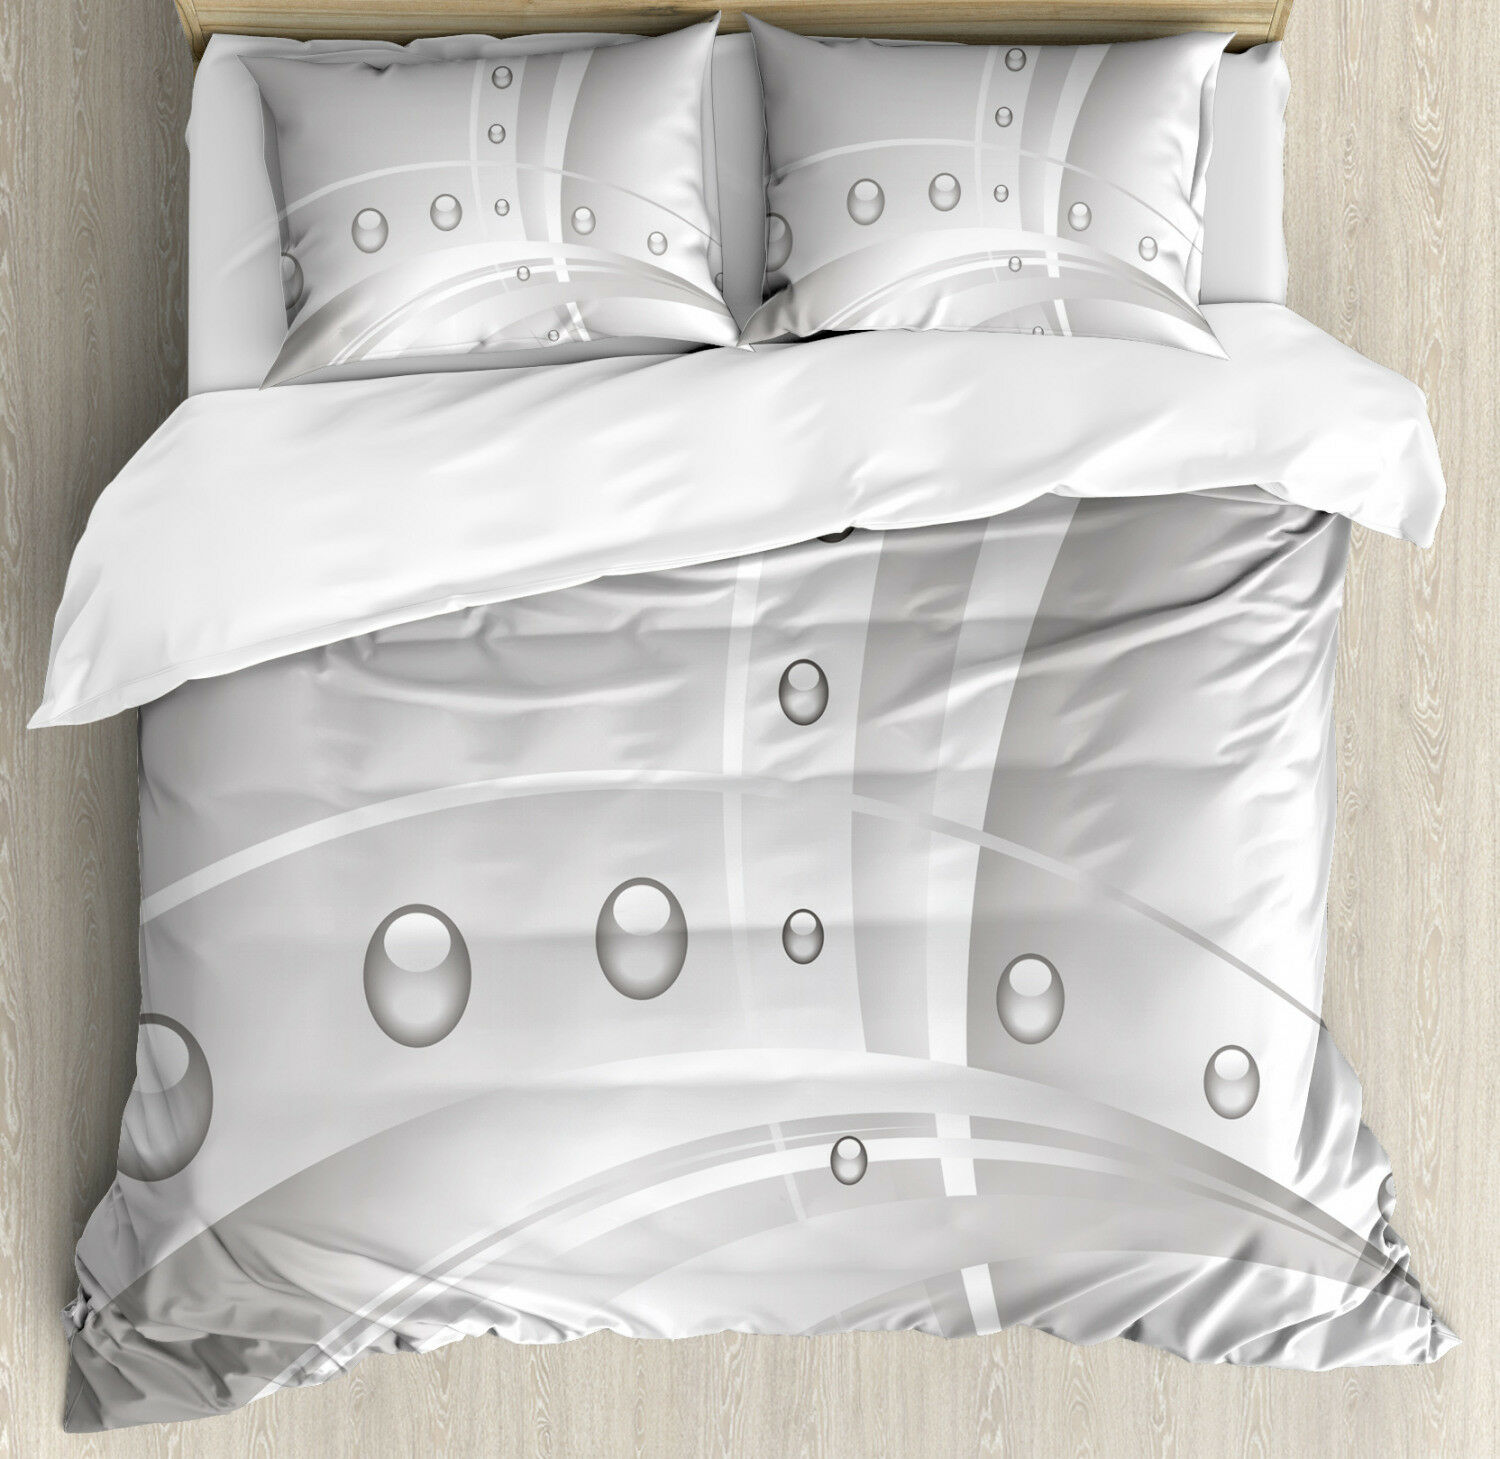 Abstract Duvet Cover Set with Pillow Shams Lines Curves Balls Print